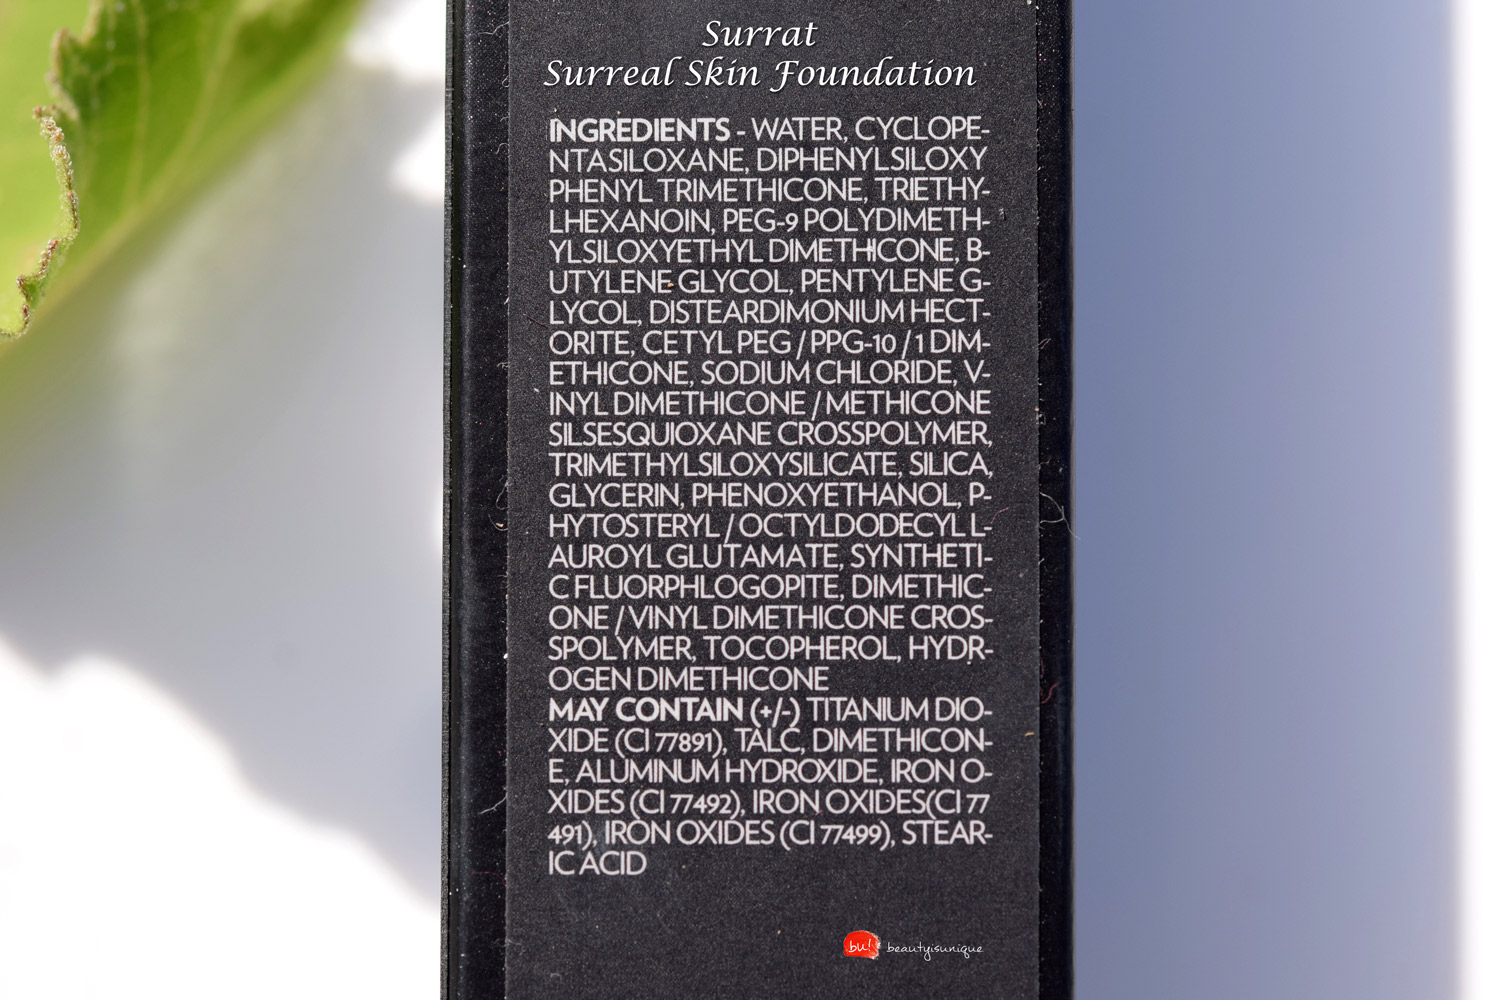 surrat-surreal-skin-foundation-ingredients